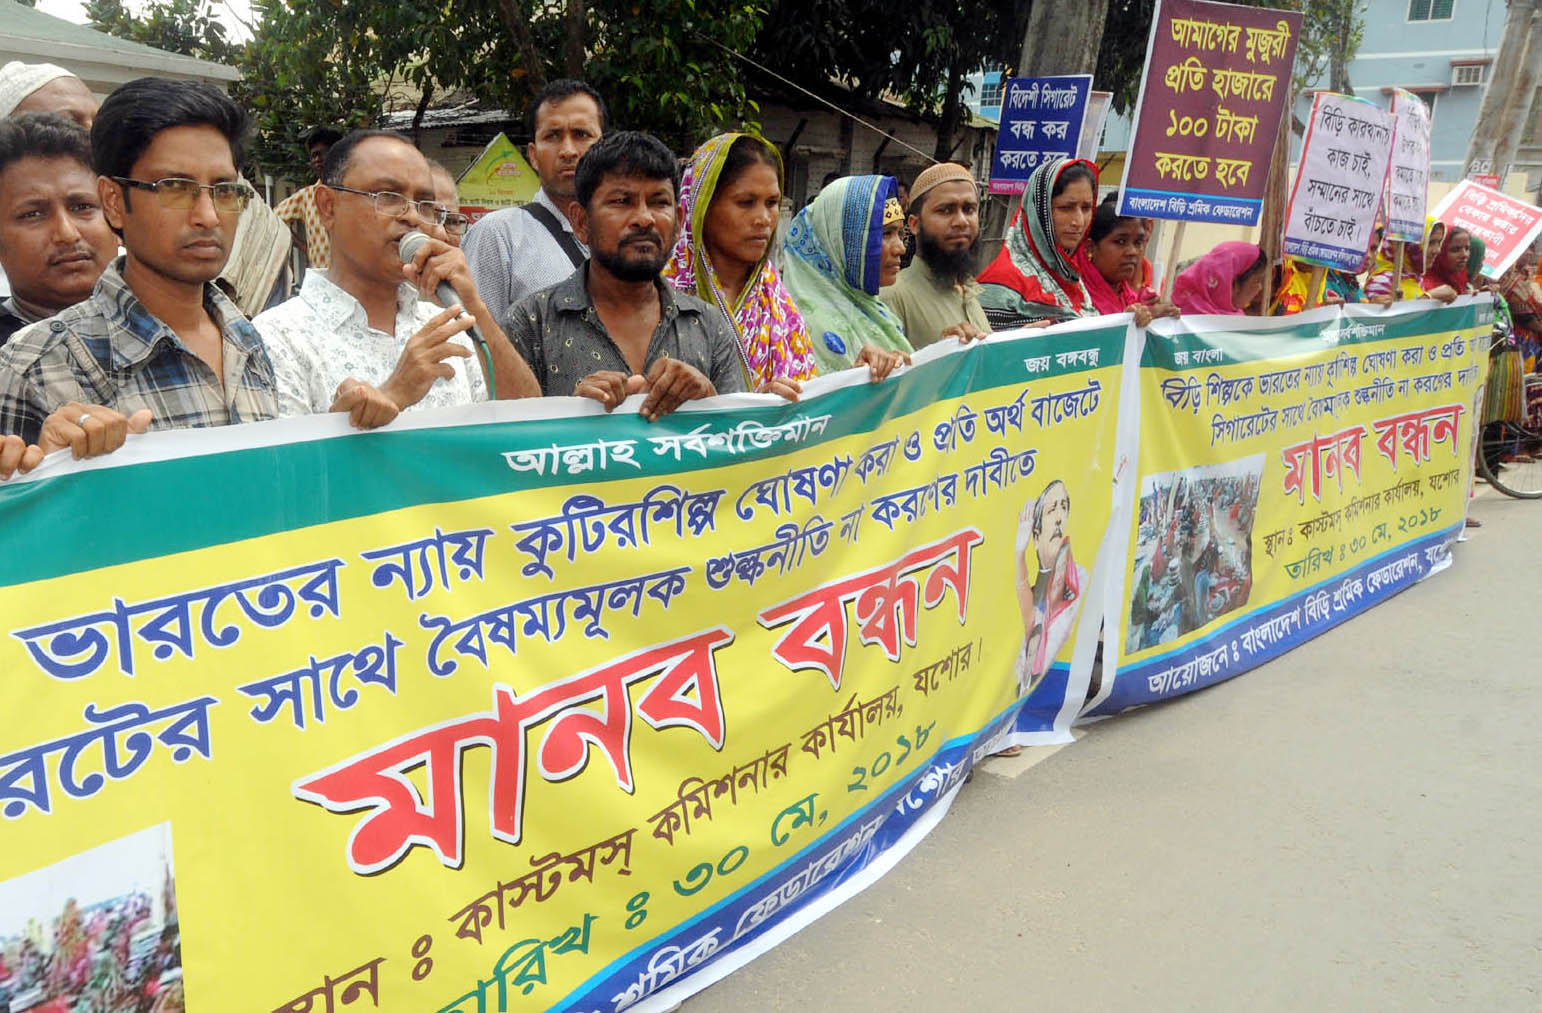 Workers demand end to discrimination against bidi industry